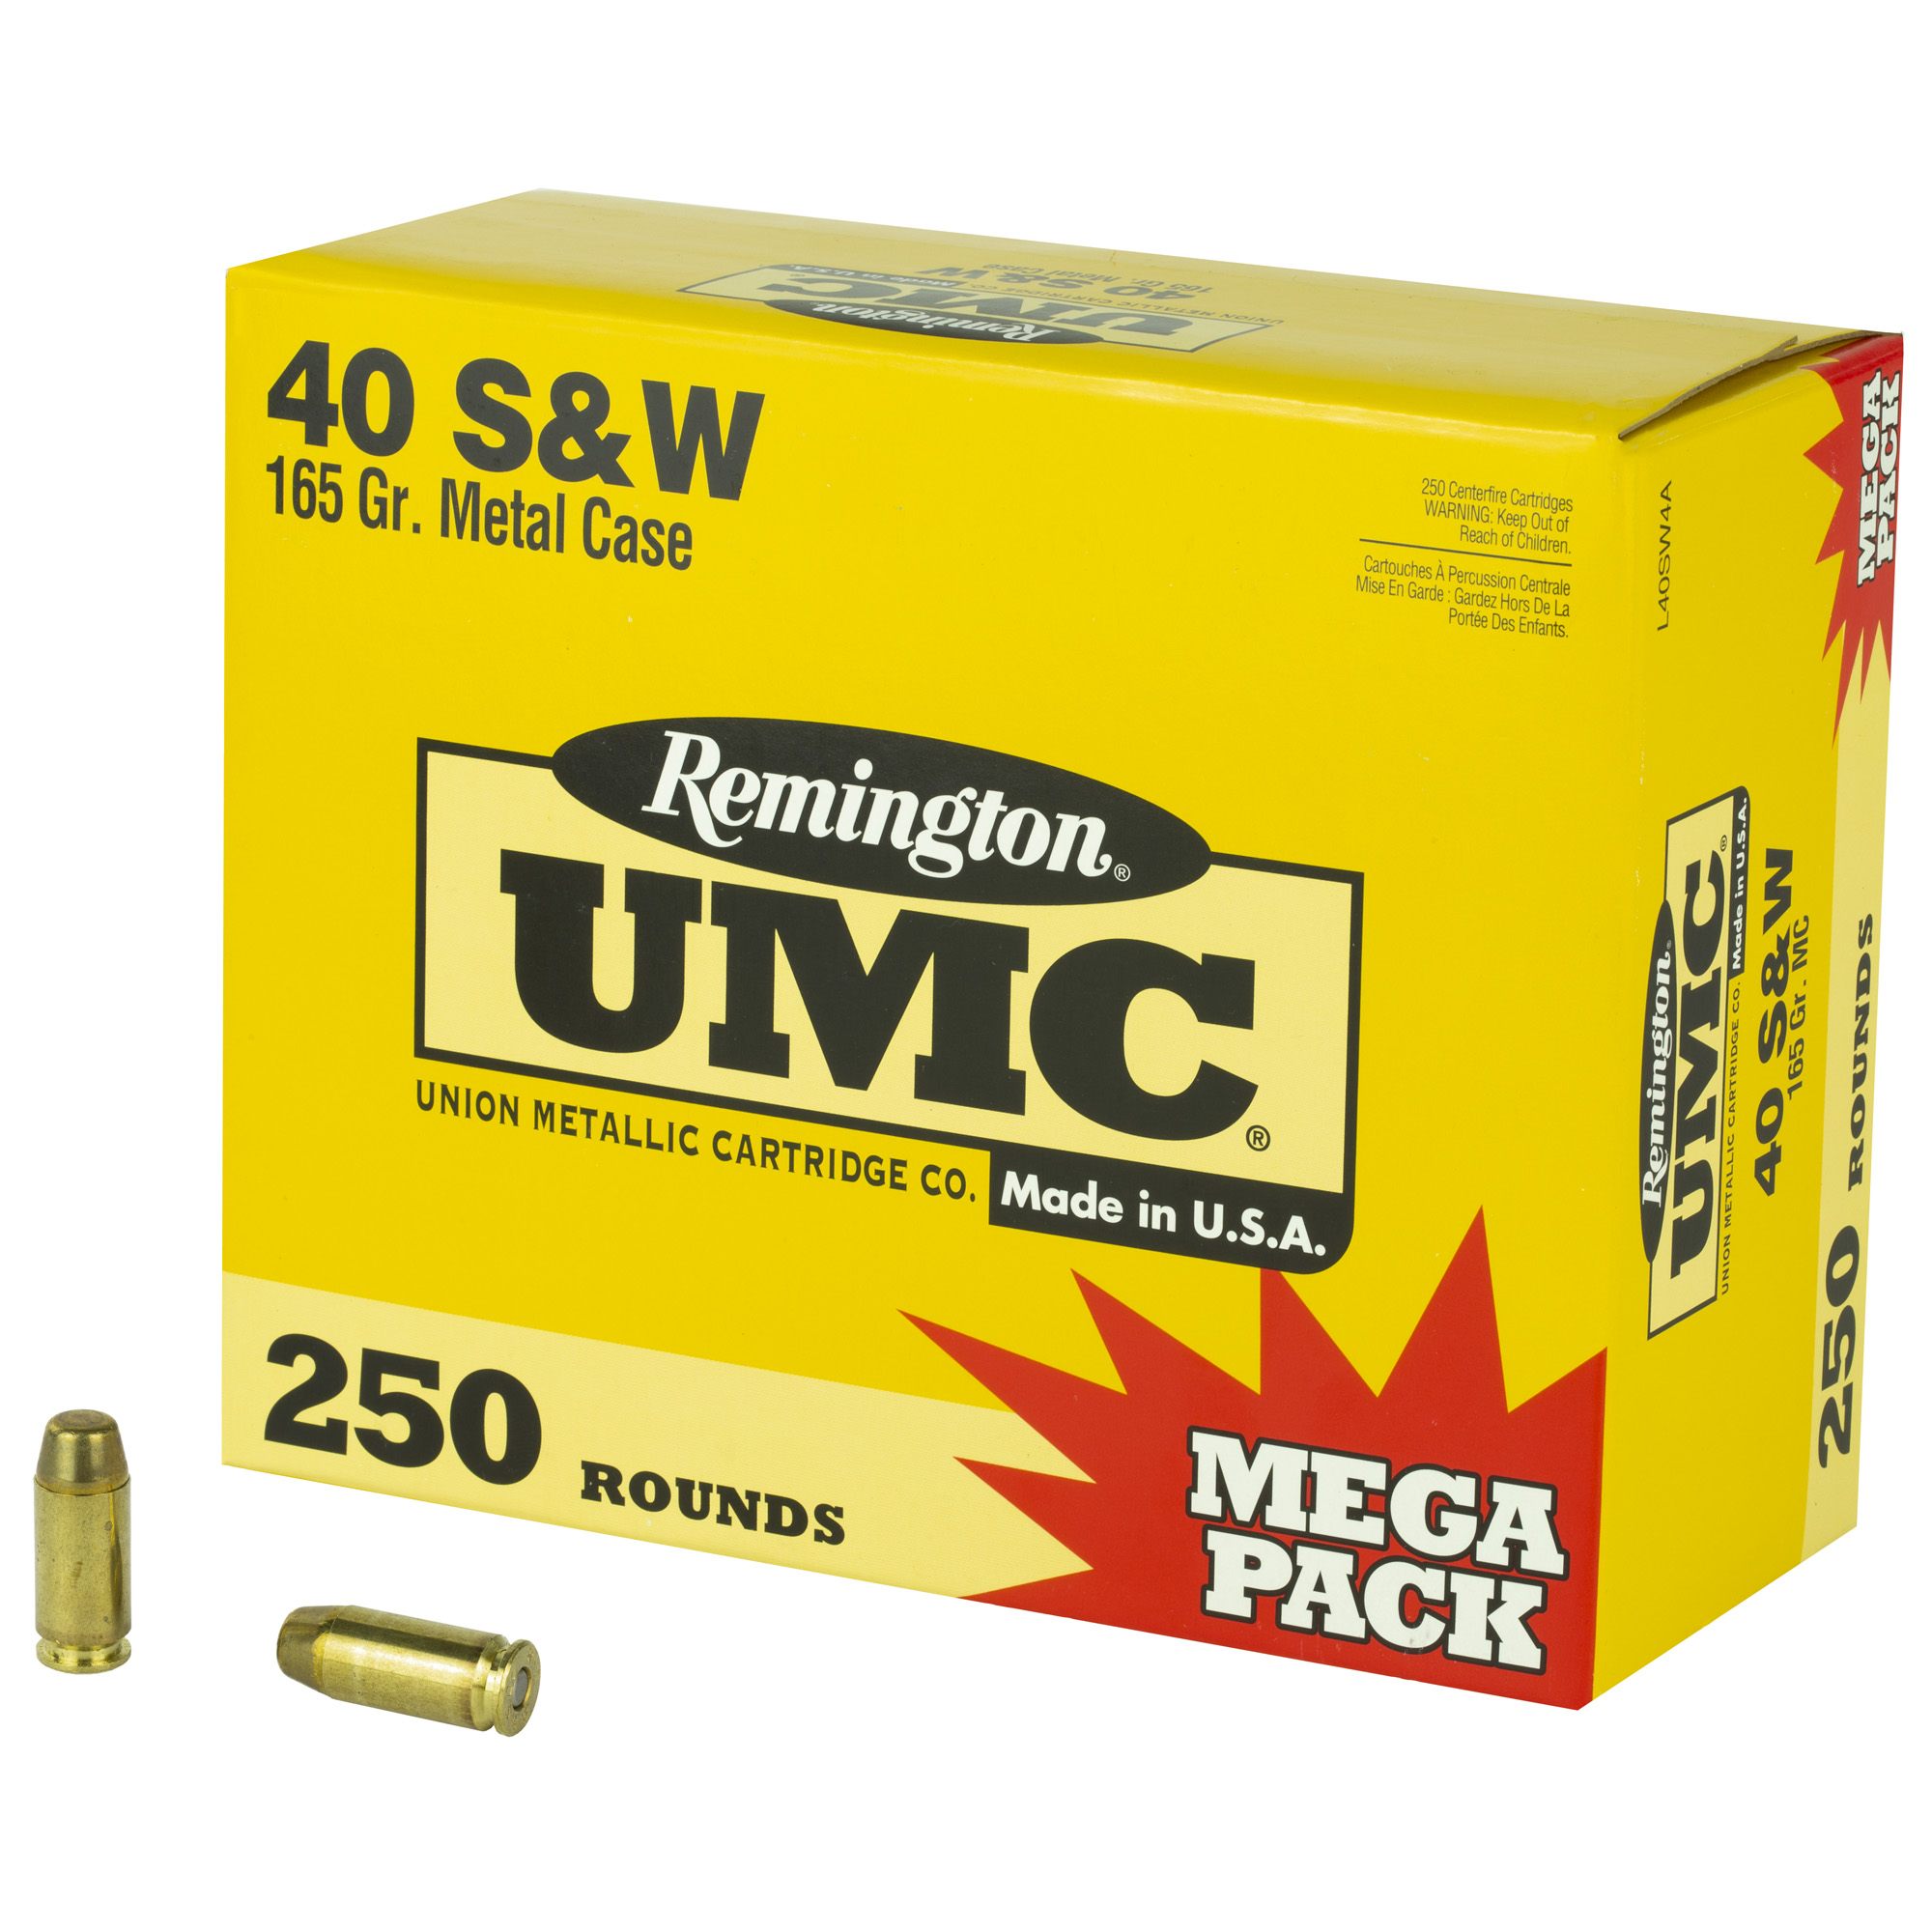 Remington Rem Umc Mp 40sw 165gr Fmj 250/1000